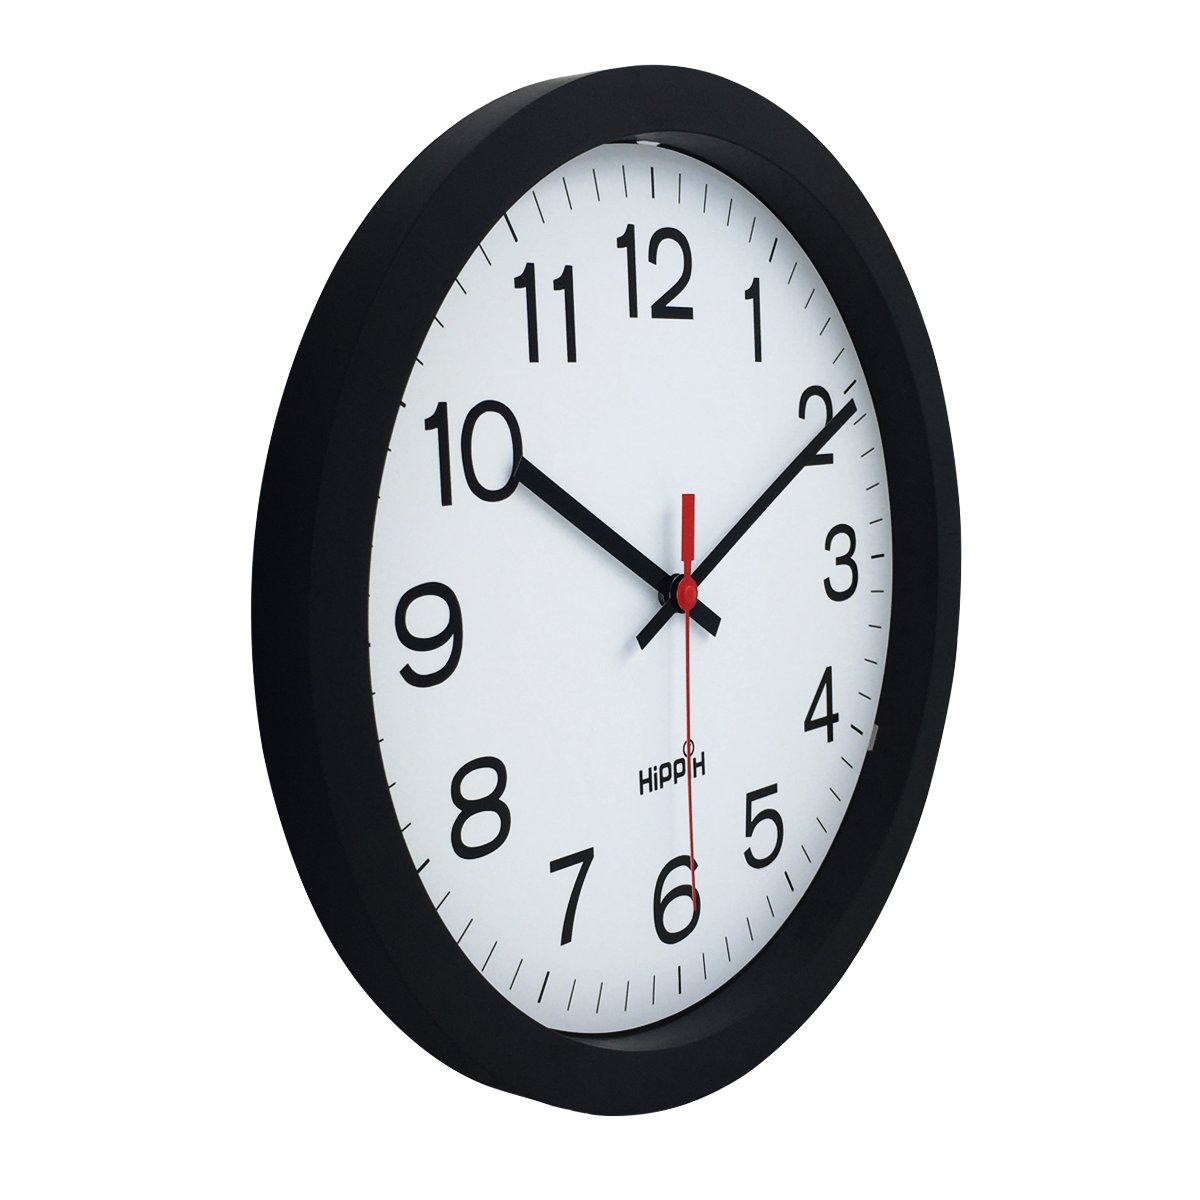 Yoobure 12 Silent Quartz Decorative Wall Clock Non-Ticking Digital Plastic Battery Operated Round Easy to Read Home//Office//School Black Clock AX-AY-ABHI-122048